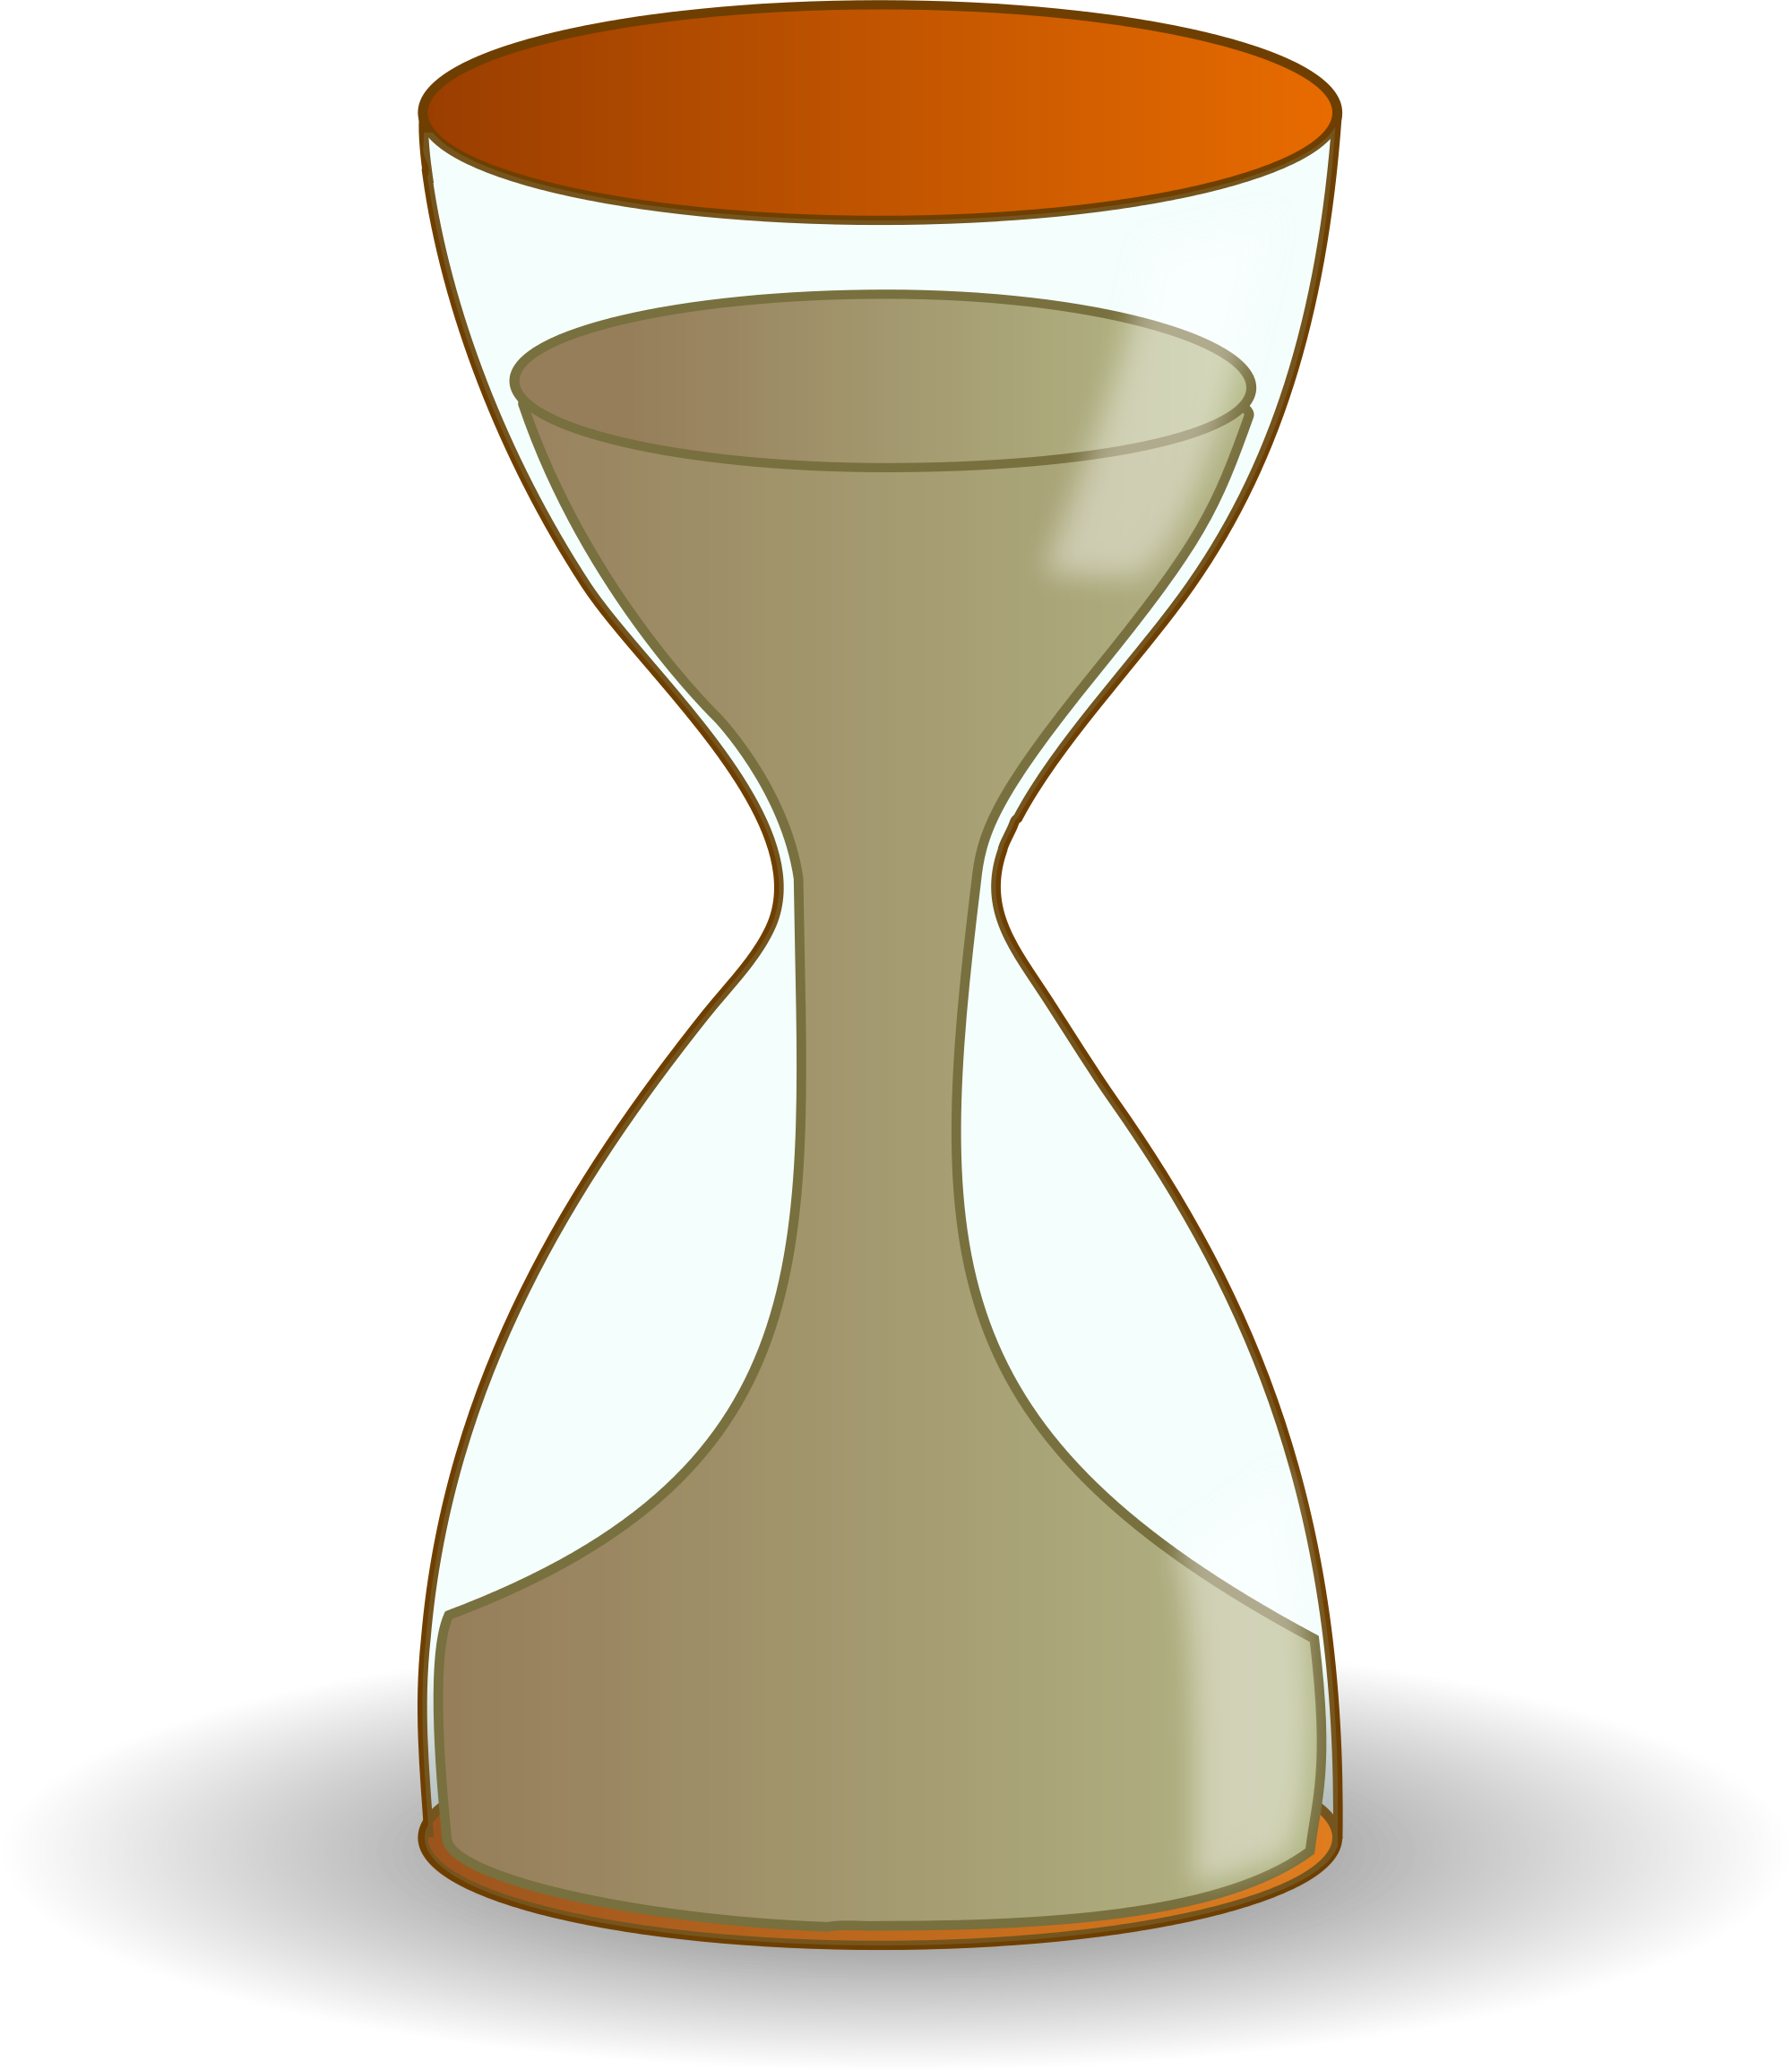 Hourglass clipart svg. File modern wikimedia commons